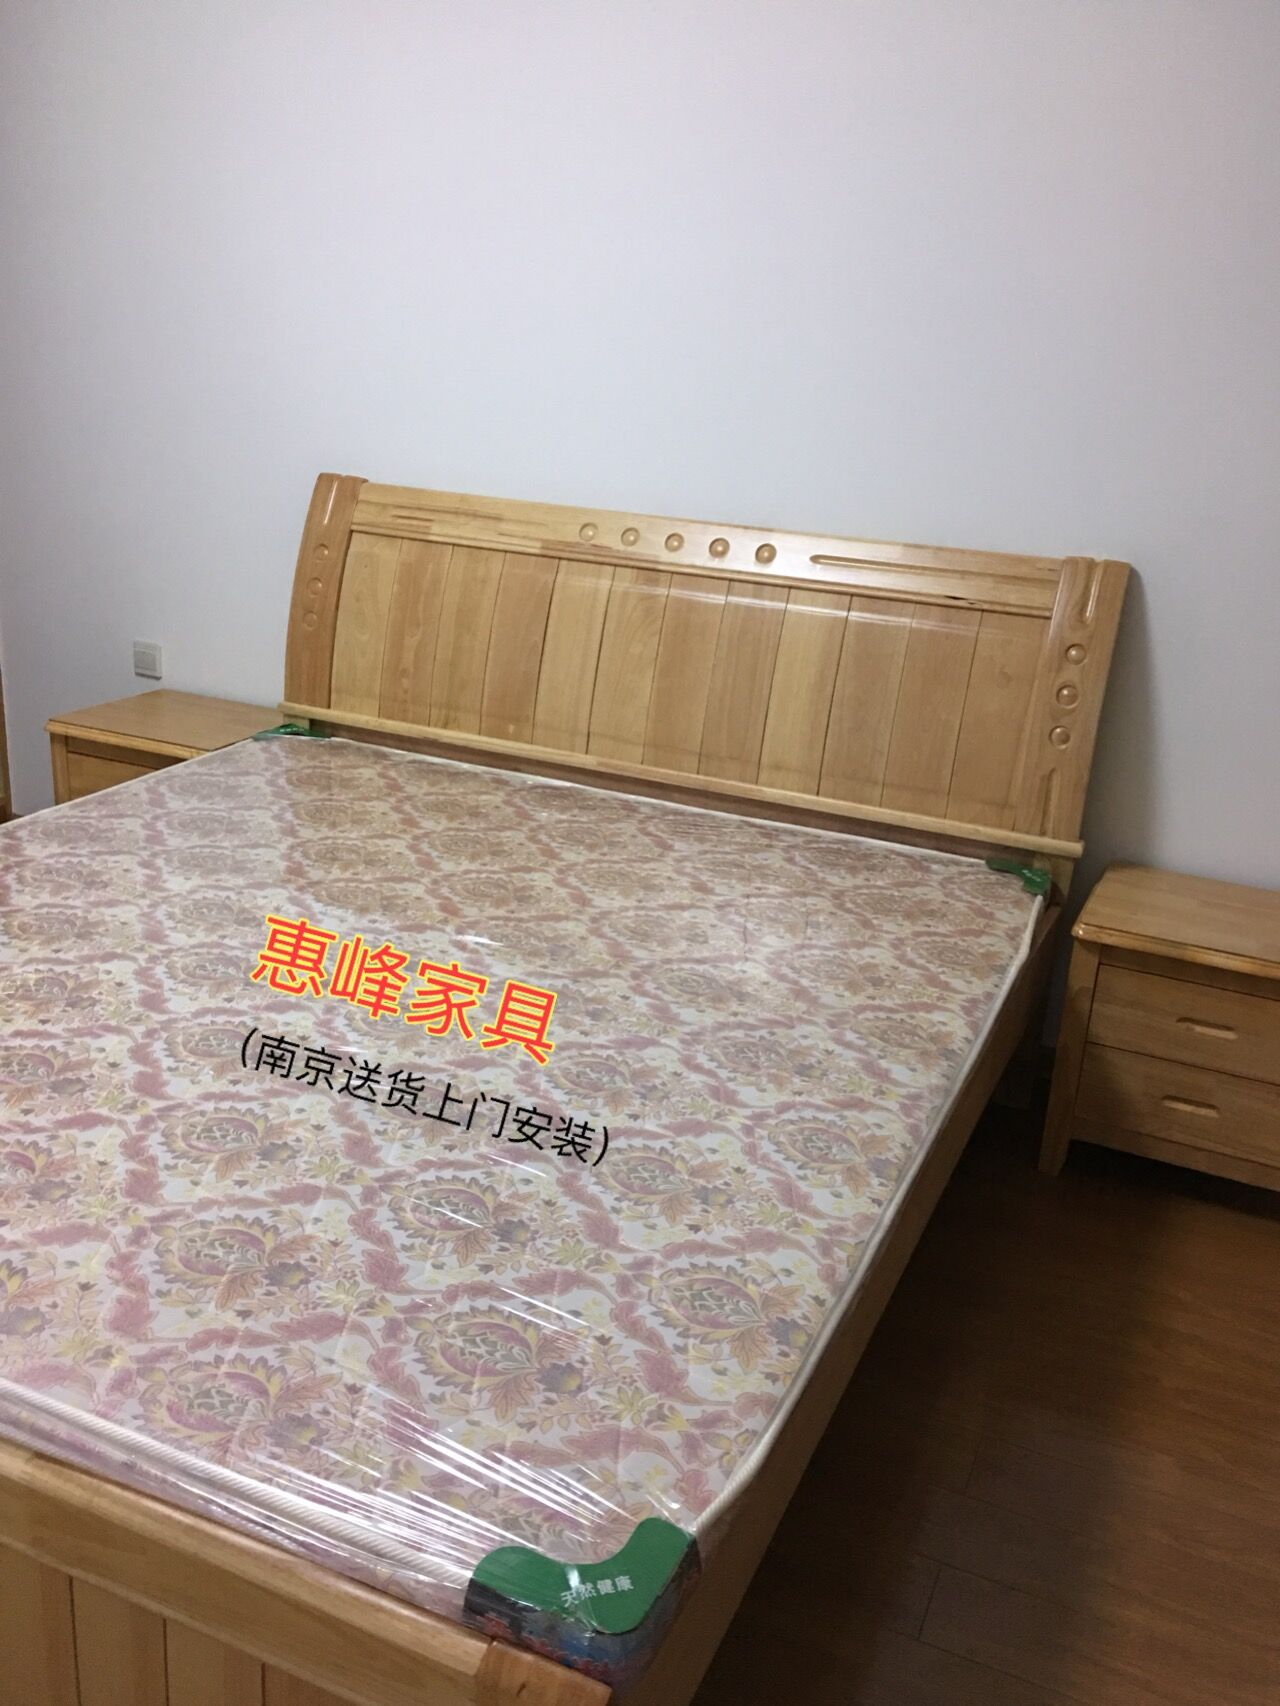 High quality oak solid wood bed, 1.5 meters bed, 1.8 meters bed double bed (Nanjing city package transportation fee installation)